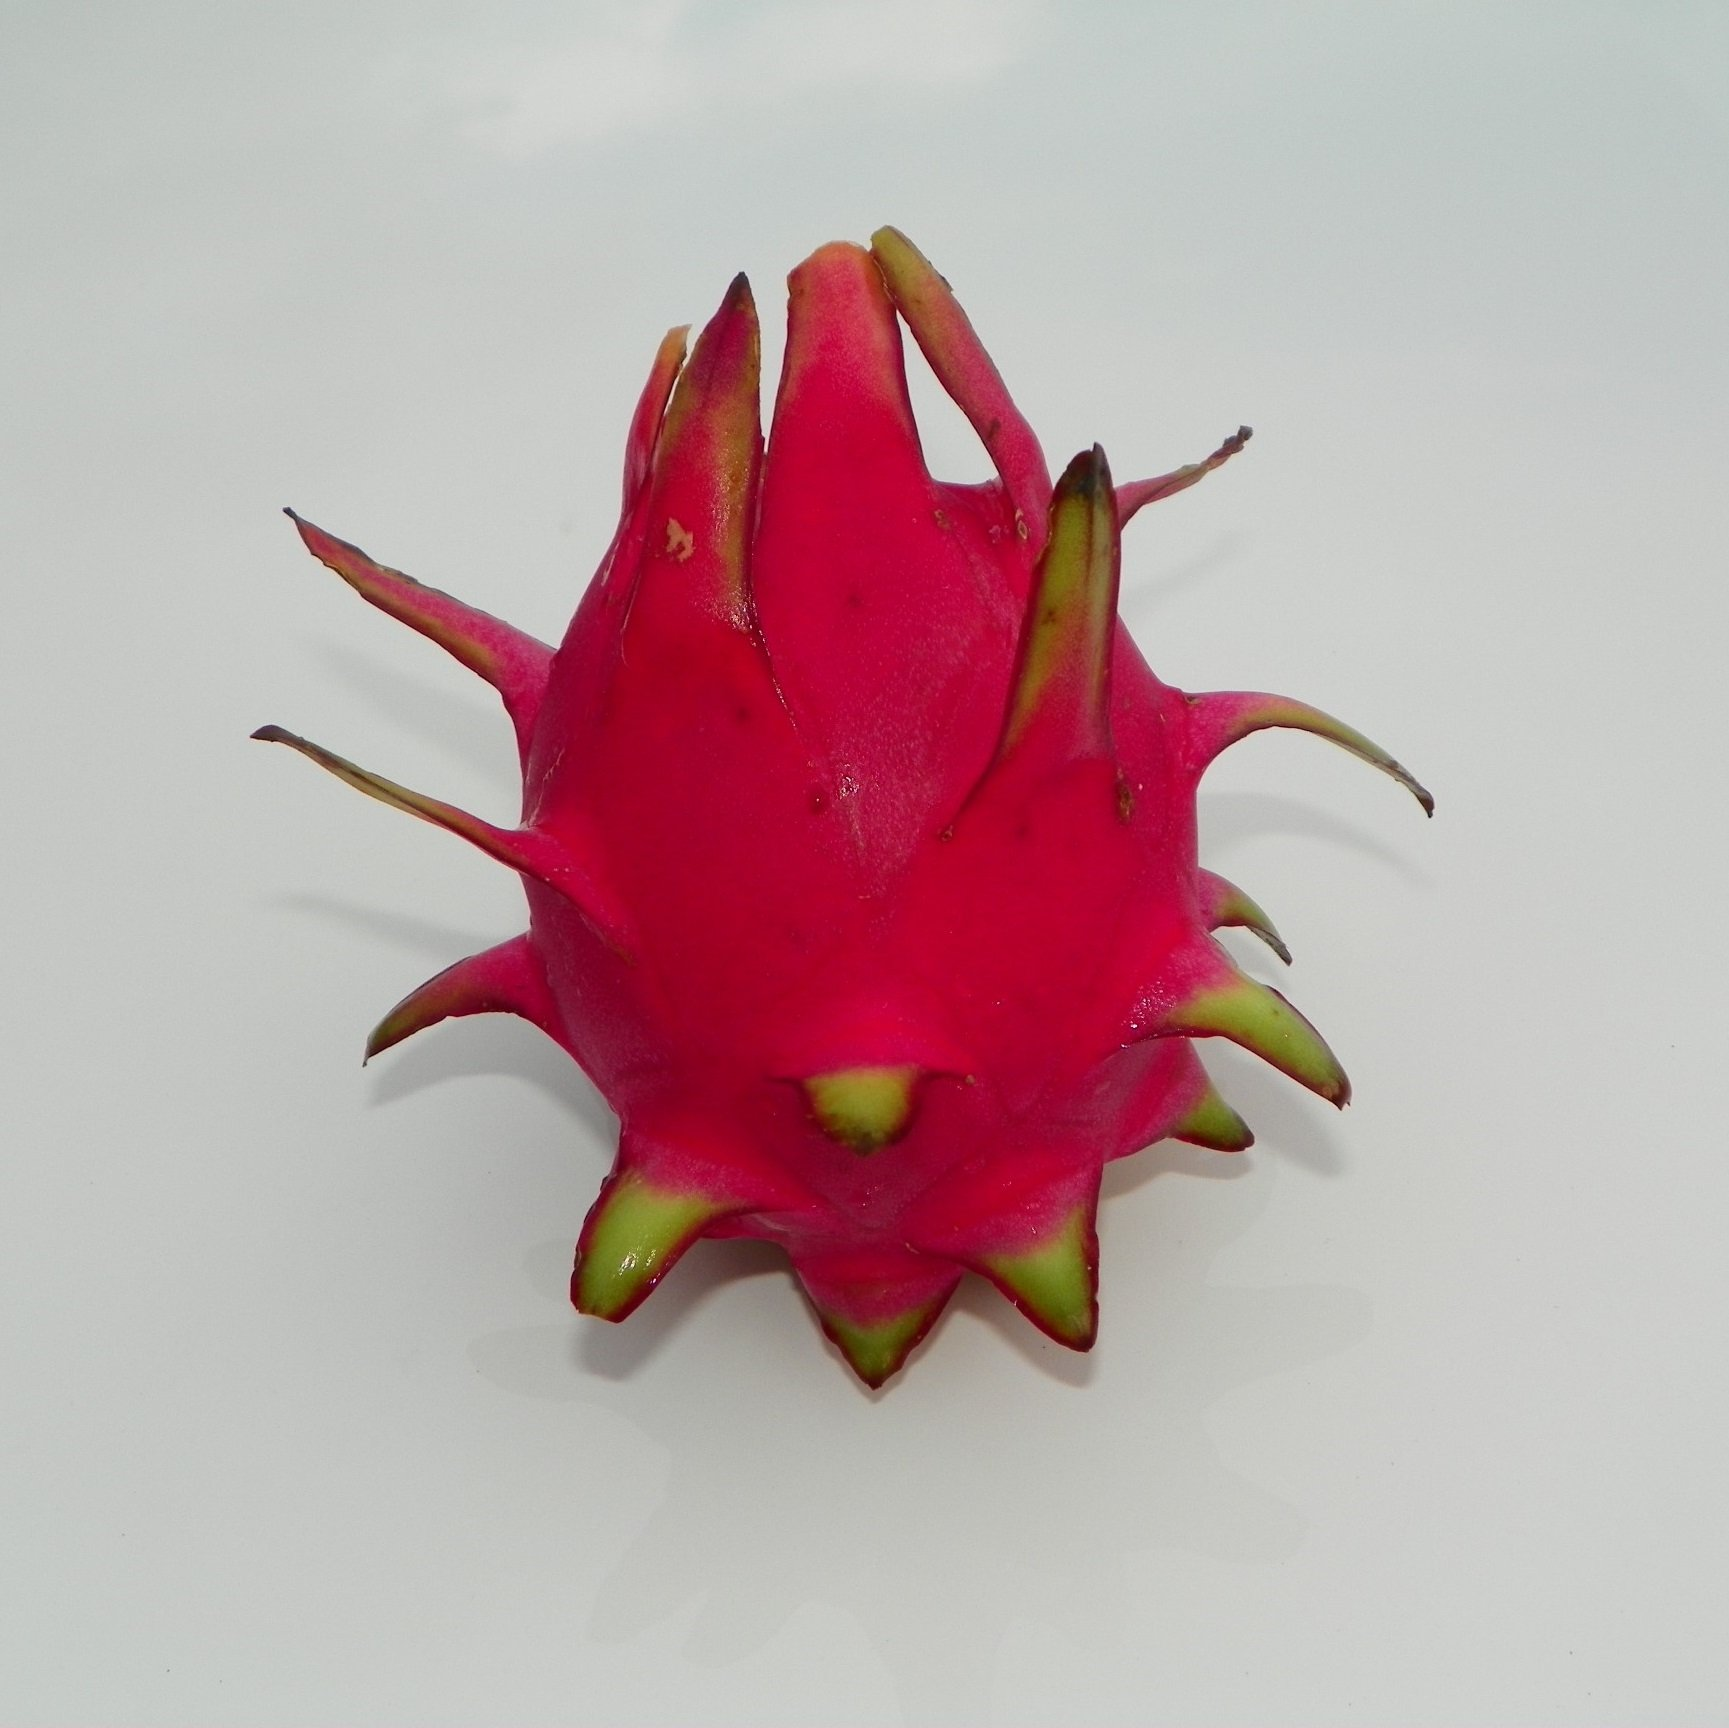 Dragon Fruit variety Hylocereus Polyrhizus fruit